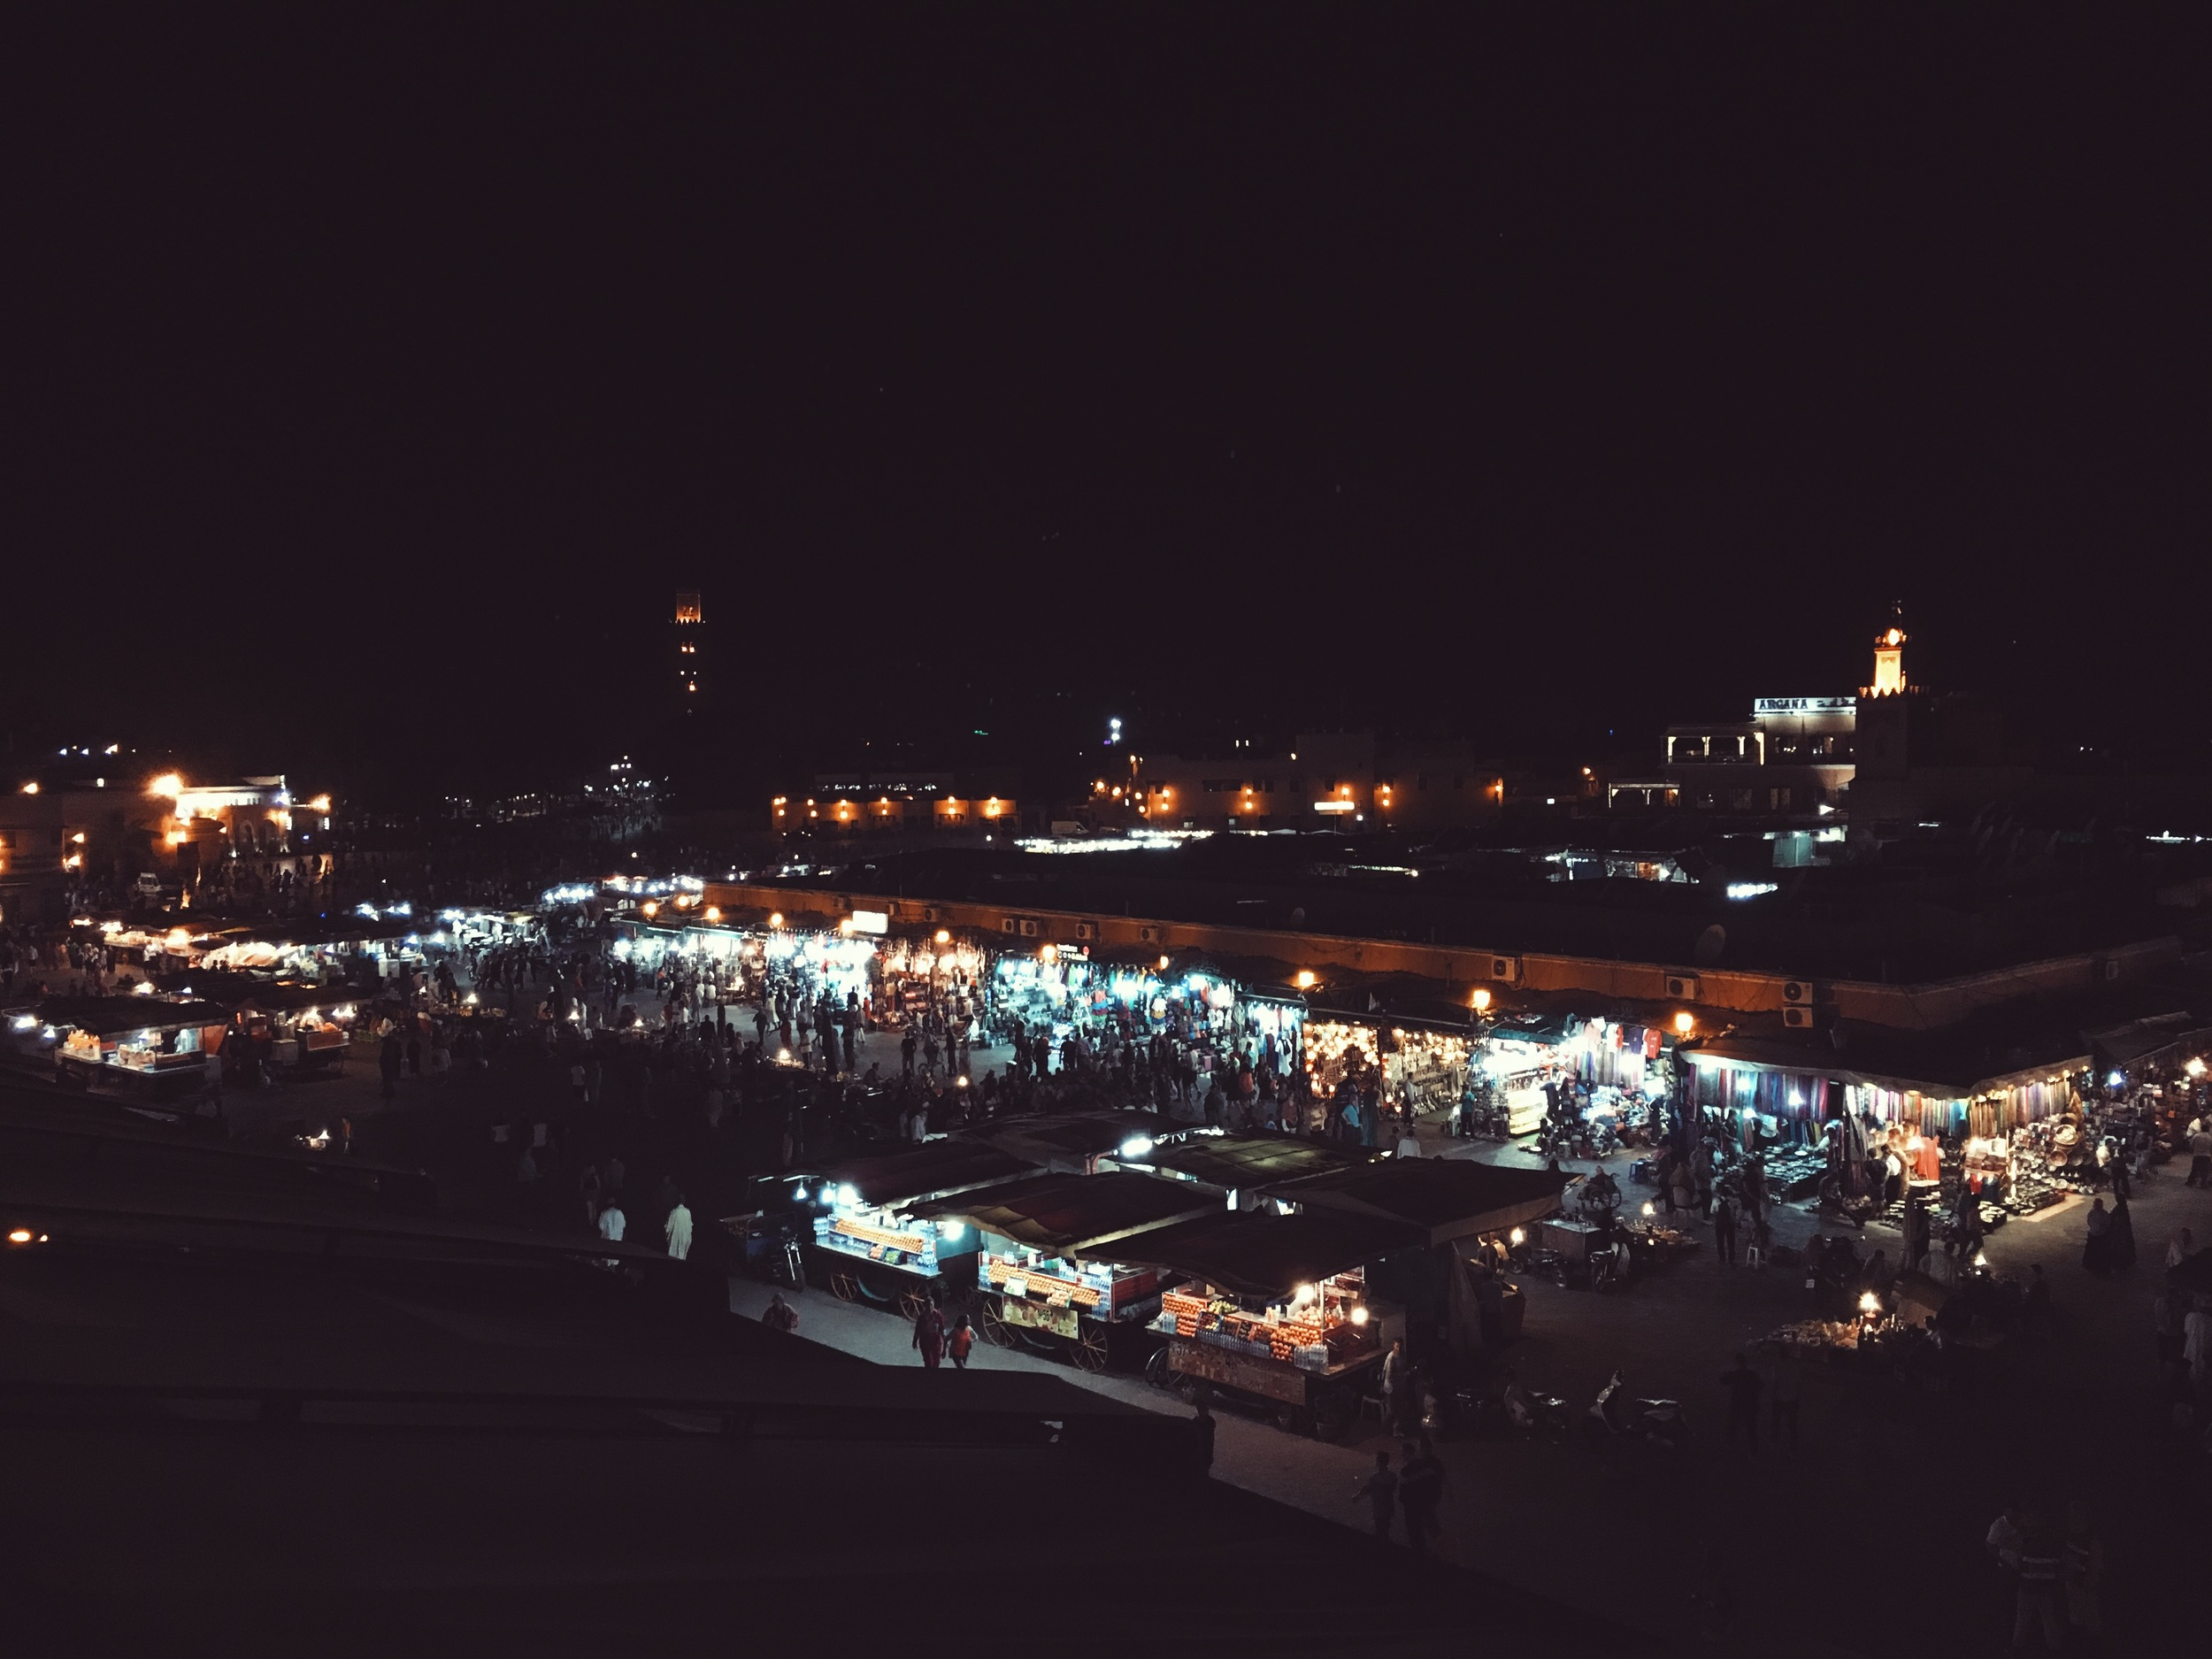 marrakech by night is straight from a dream